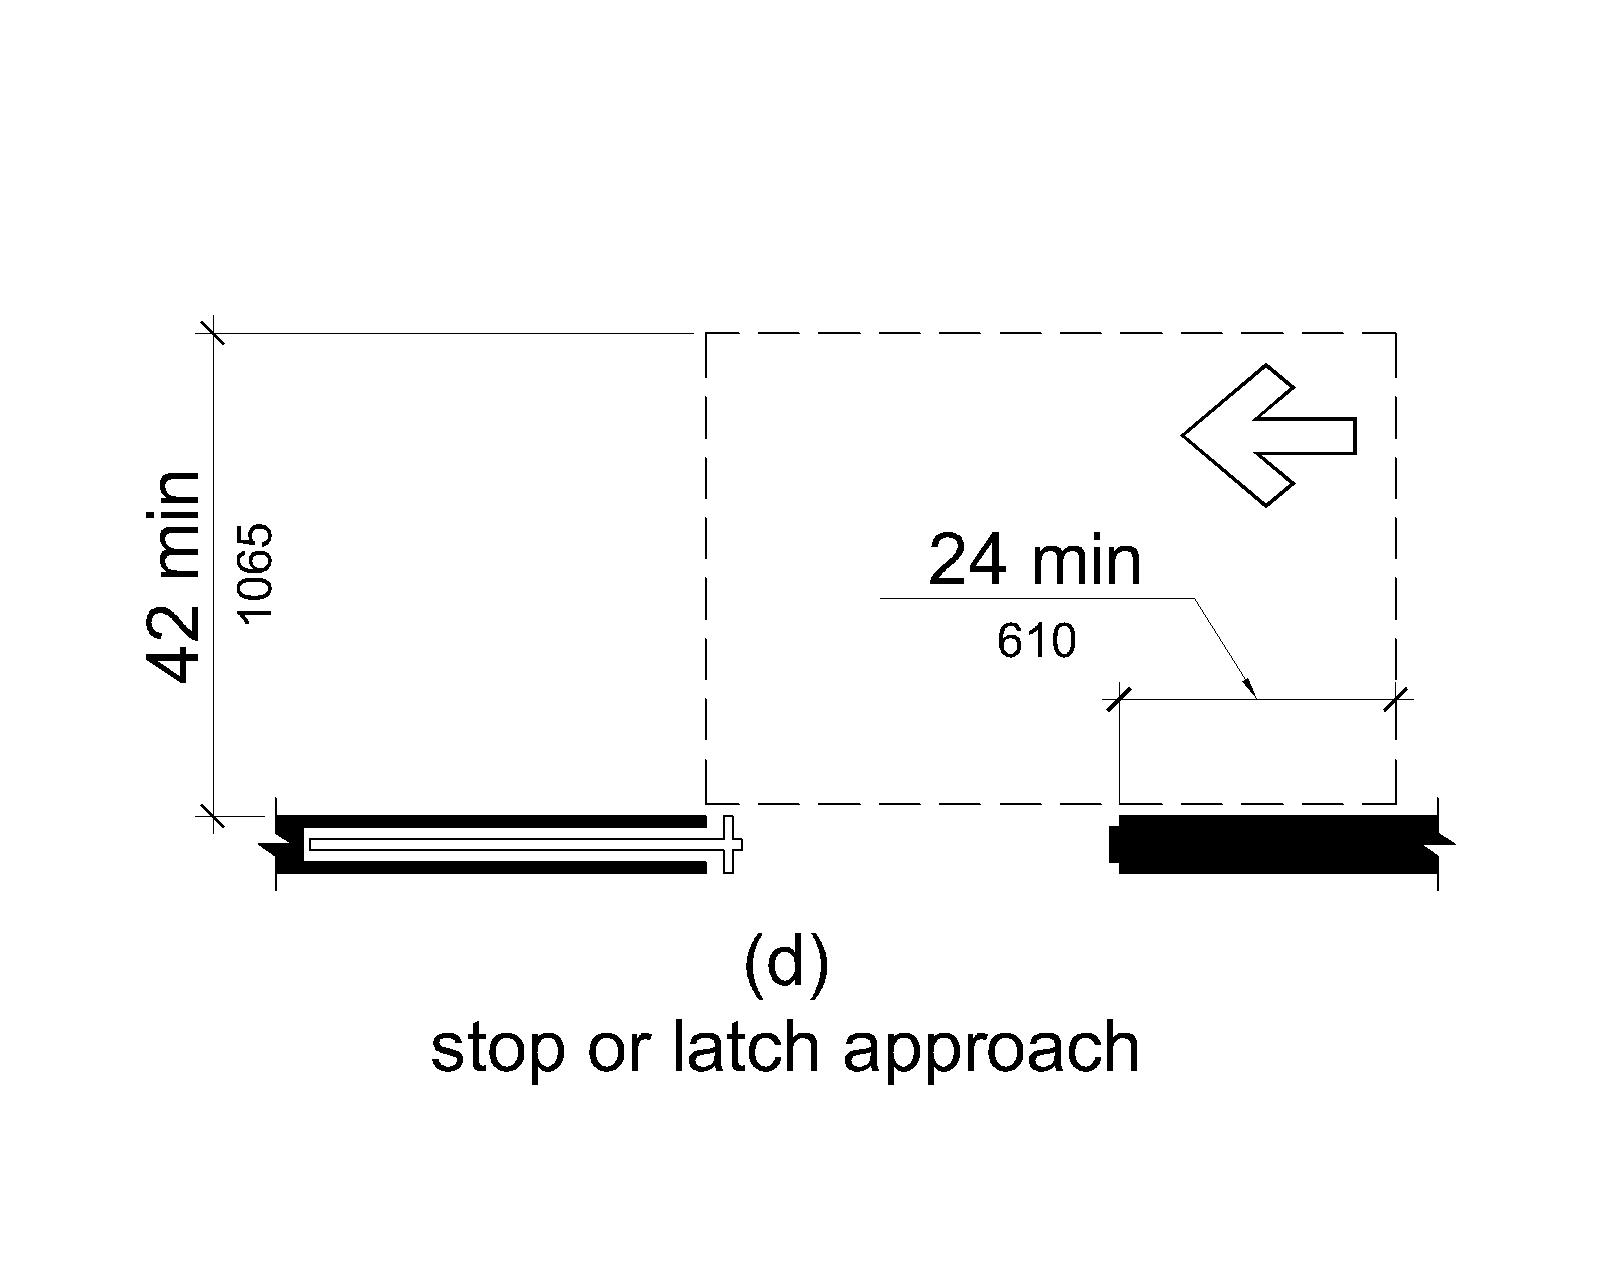 Figure (d) shows a stop or latch approach. Maneuvering clearance extends 24 inches (610 mm) from the stop or latch side and is 42 inches (1065 mm) minimum perpendicular to the doorway.